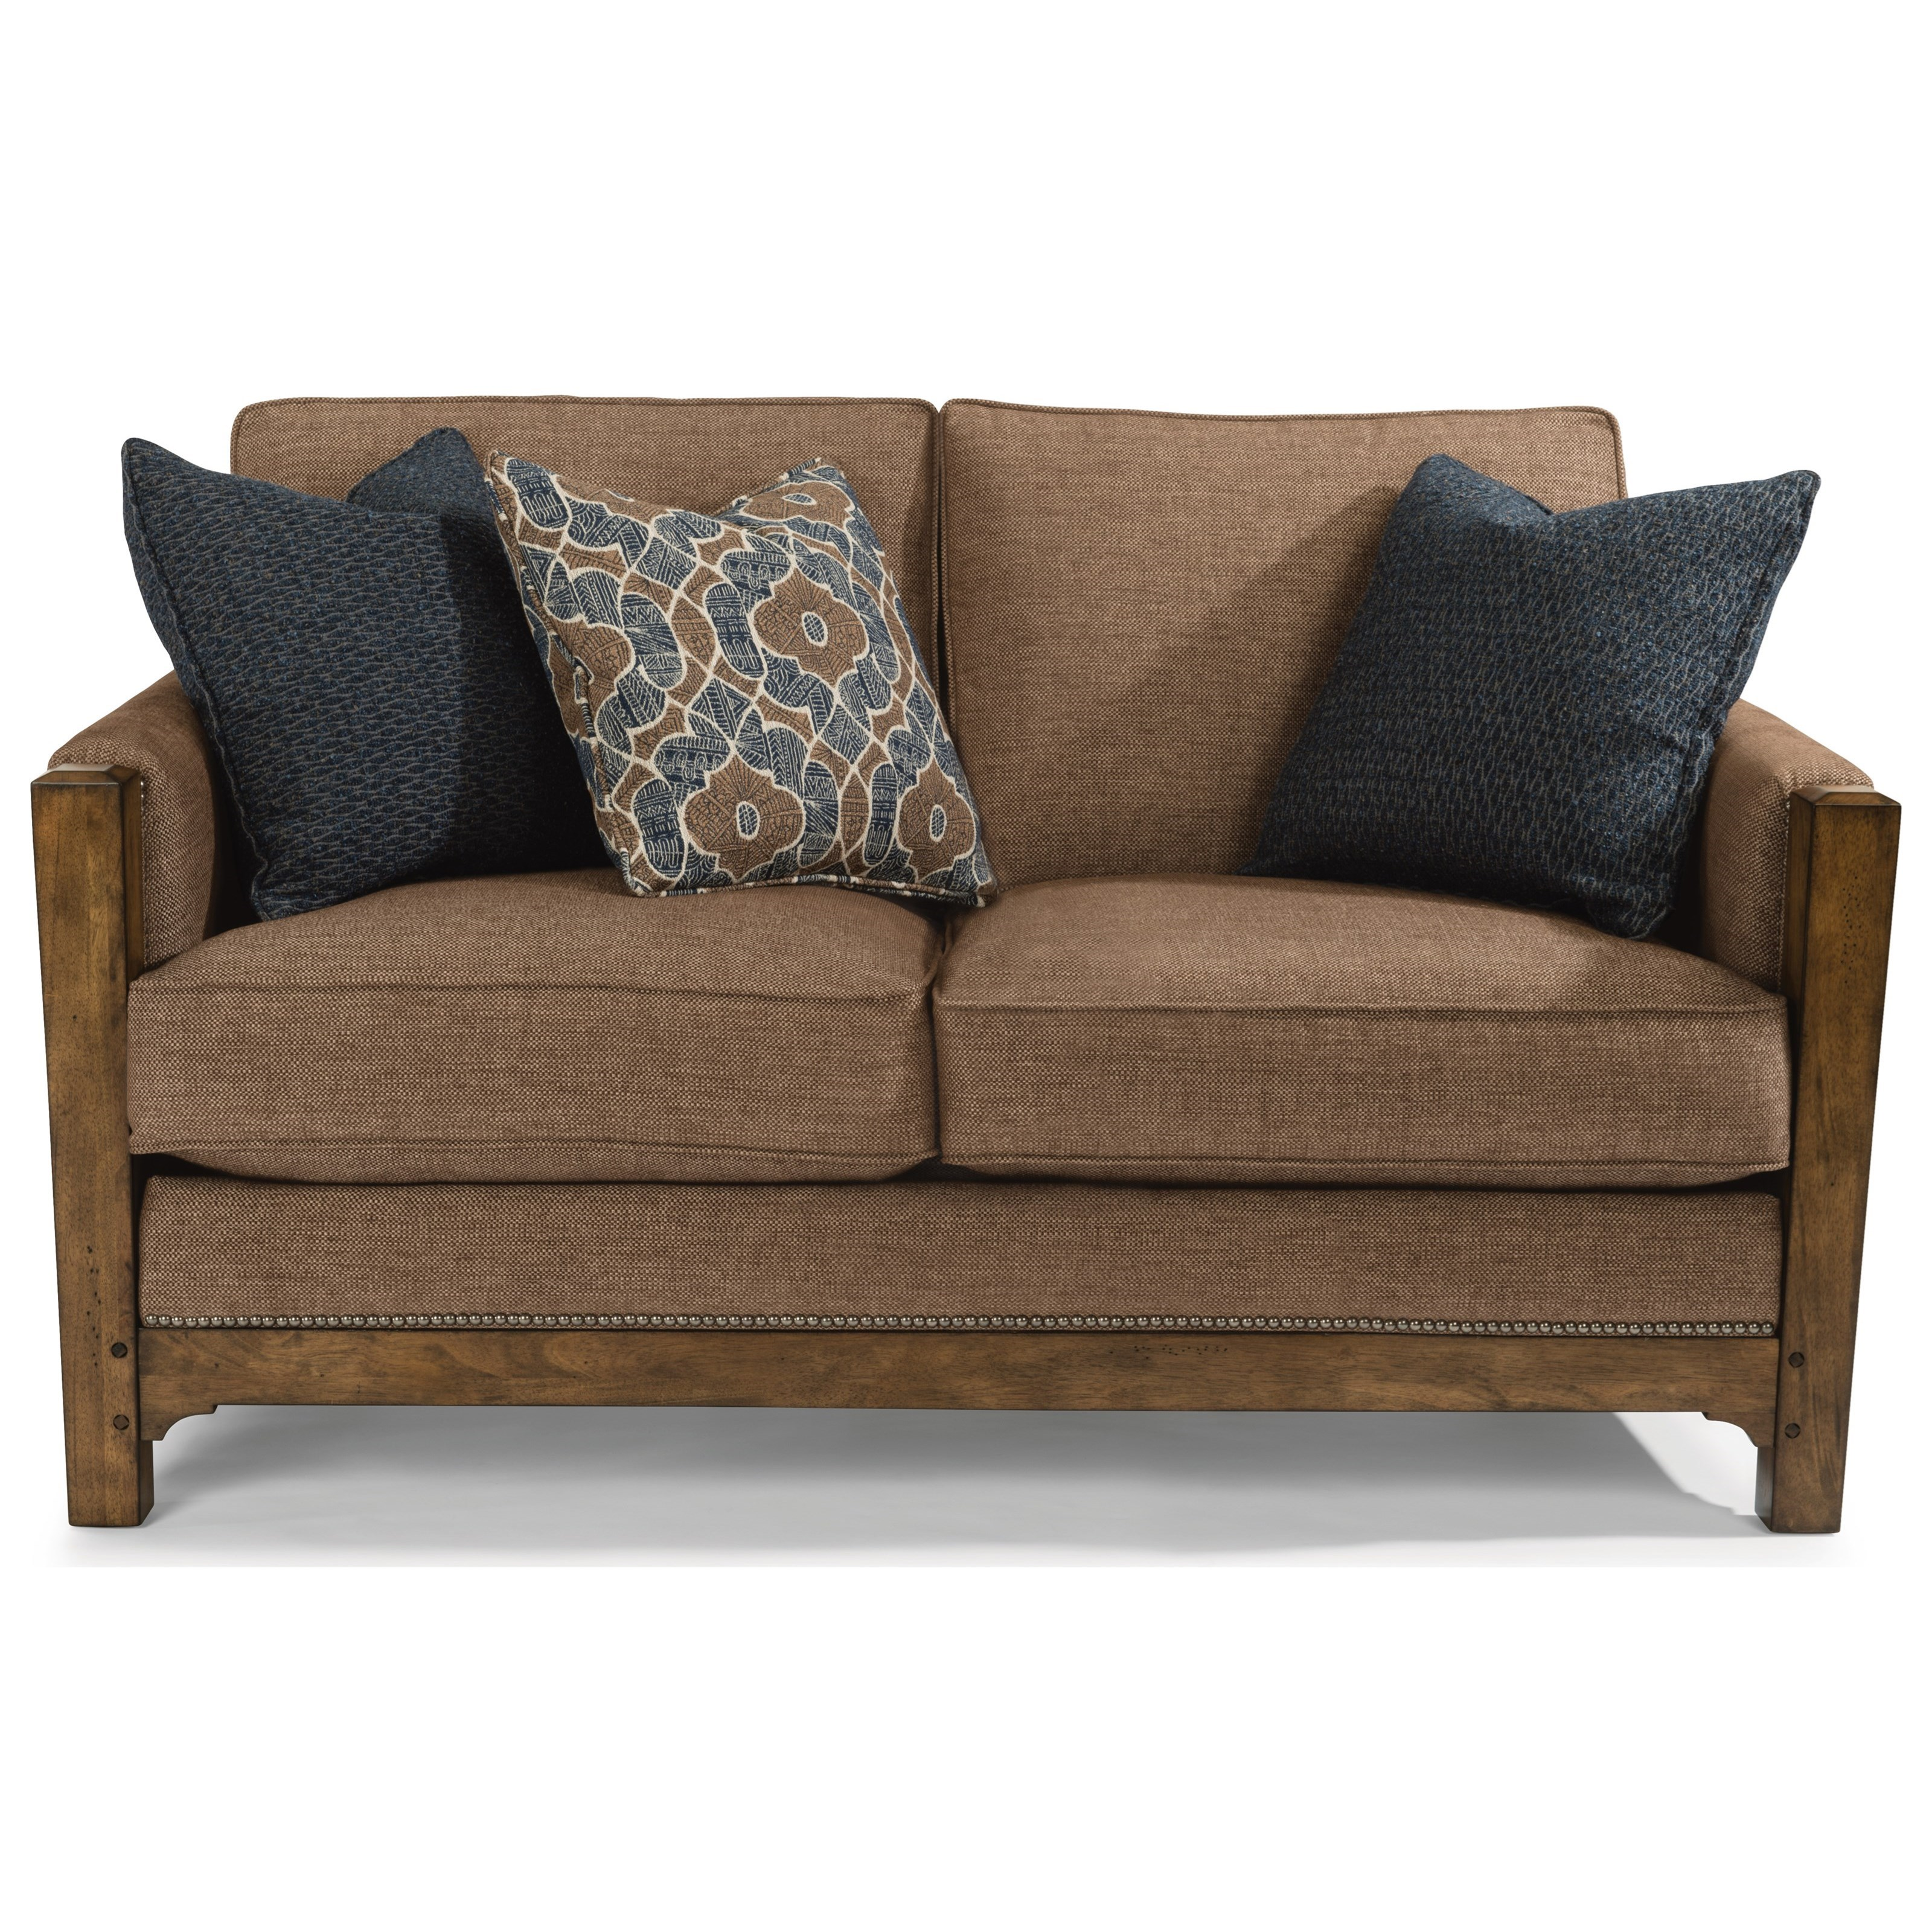 Flexsteel Sofa Mission: Flexsteel Sonora Mission Love Seat With Nailhead Trim